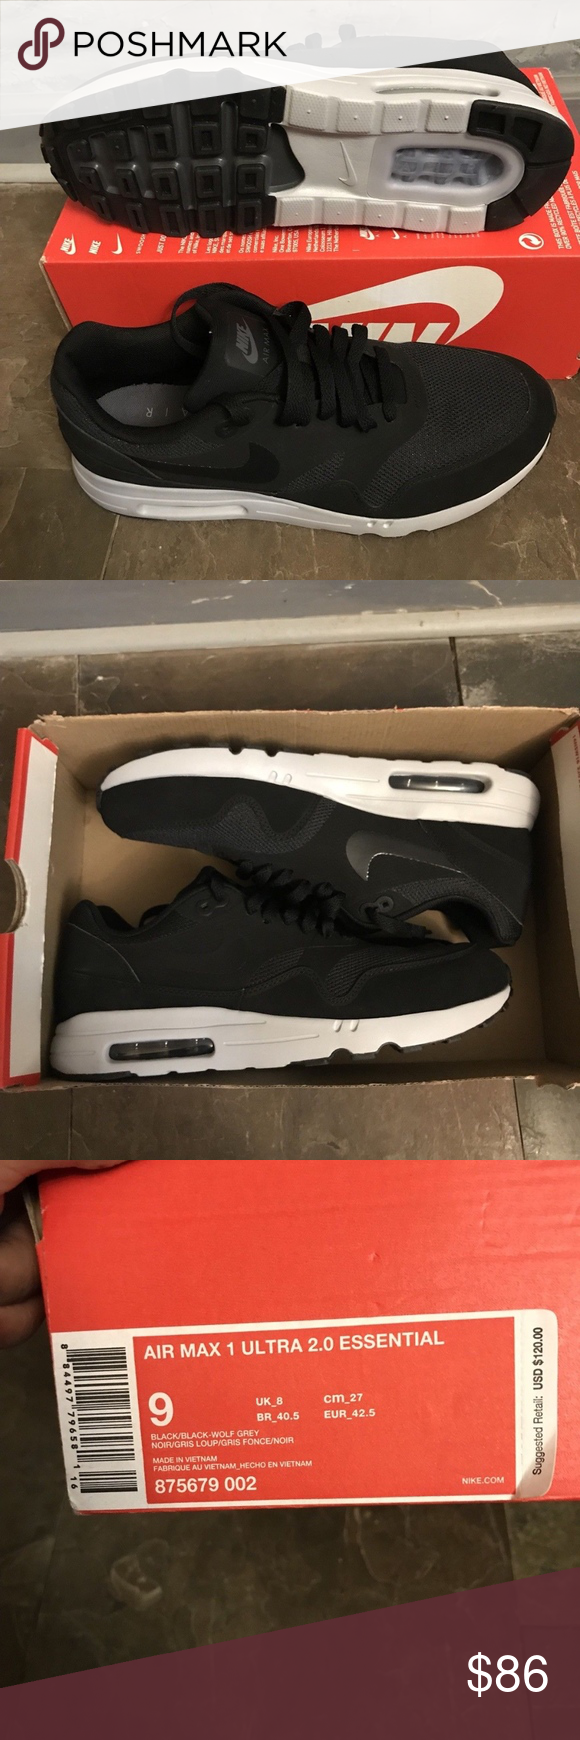 best loved 31bdb 9cb97 NIKE AIR MAX 1 ULTRA 2.0 ESSENTIAL BLACK WOLF GREY Welcome to Blessed Kicks!